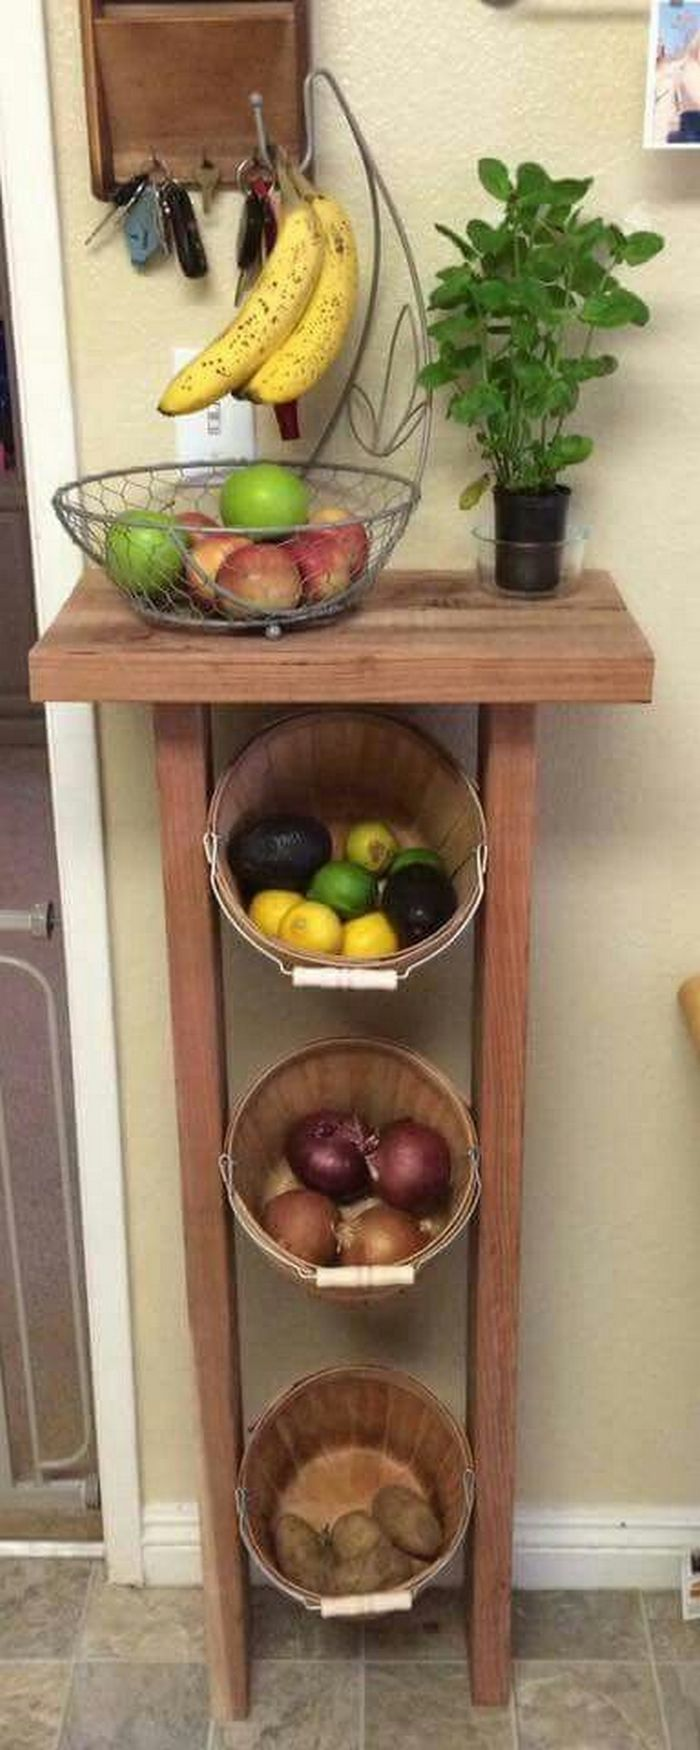 Kitchen Storage Ideas Best 25 Vegetable Storage Ideas On Pinterest  Onion Storage